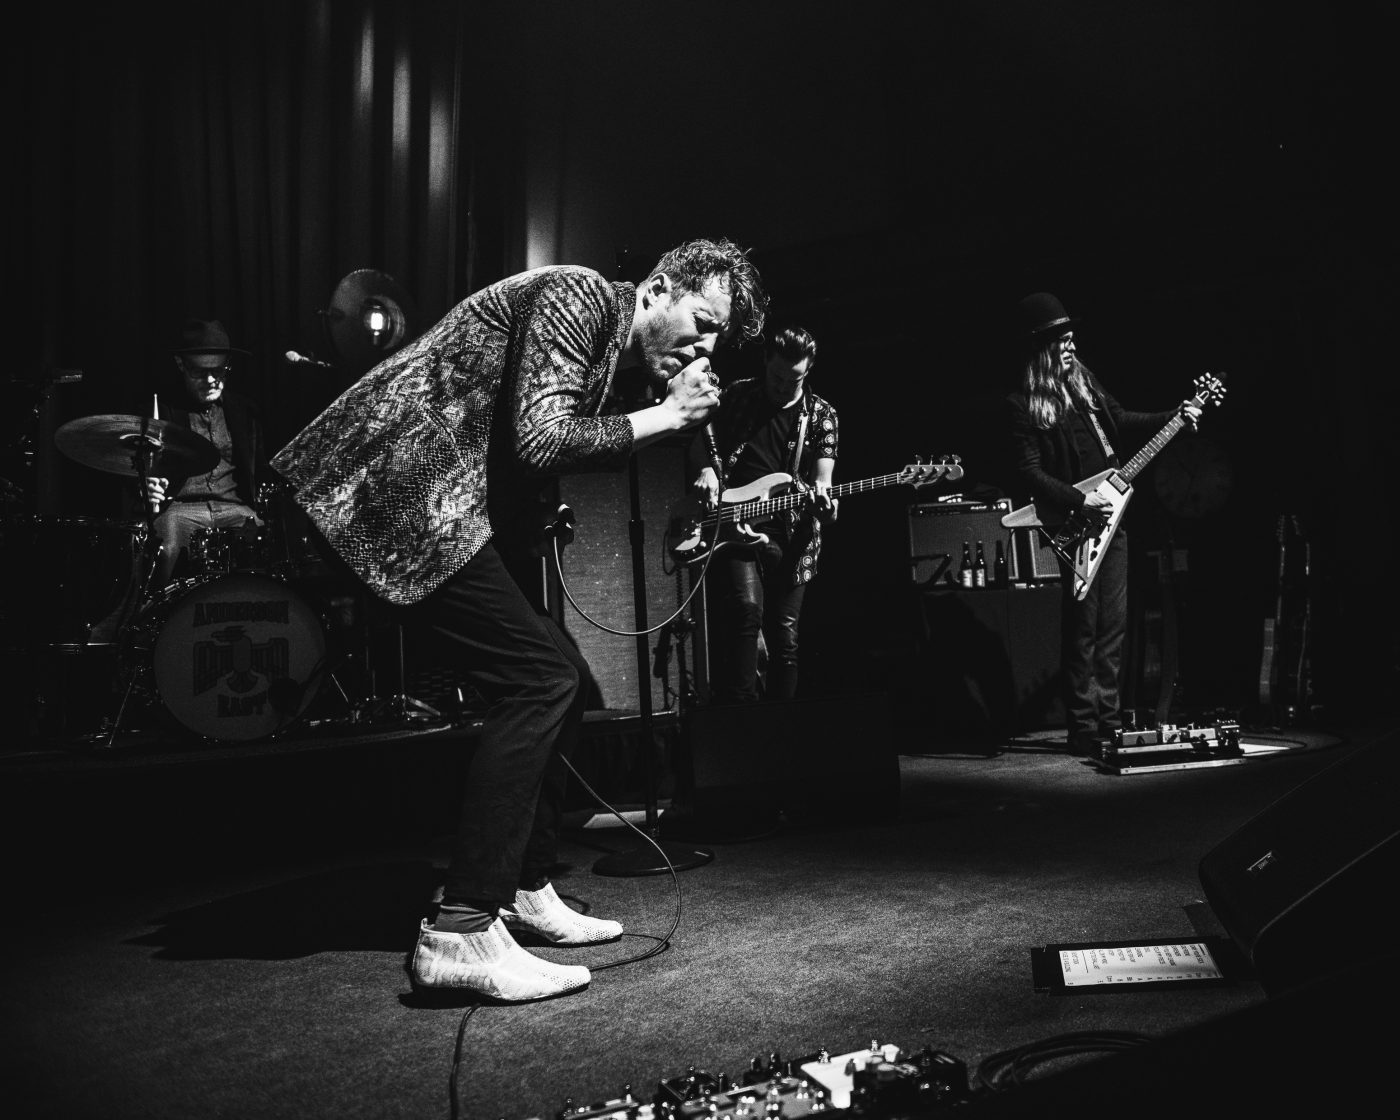 Anderson East : 9:30 Club   Photos   LIVING LIFE FEARLESS